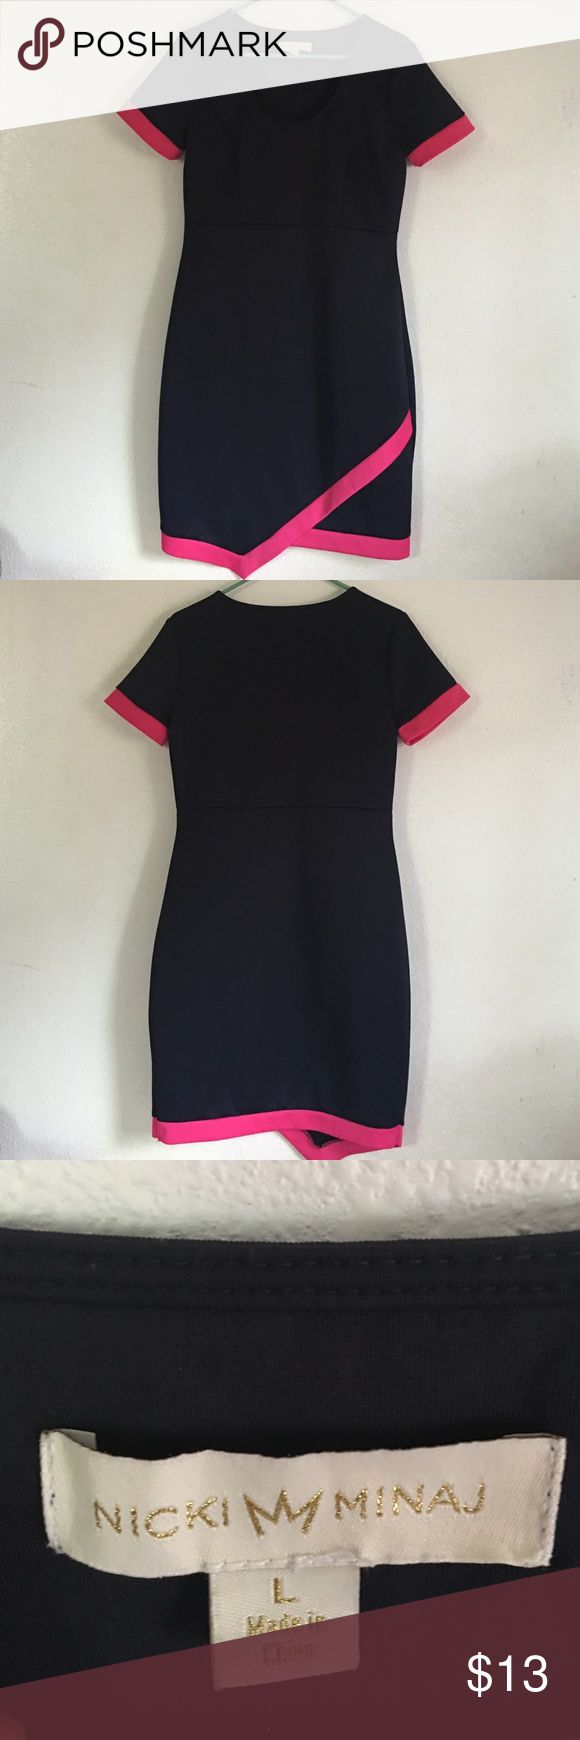 """Gorgeous dress by Nicki Minaj Deep blue color, look like black with fuchsia trim. Sexy dress that gives you curves no matter what body type you have. Purchase here at posh but sadly I'm 4'11"""", too short for this dress. More likely for 5 feet and up. When I tried it on my curve stands out more and I love it! Too bad too long for me😔. Dresses Midi"""